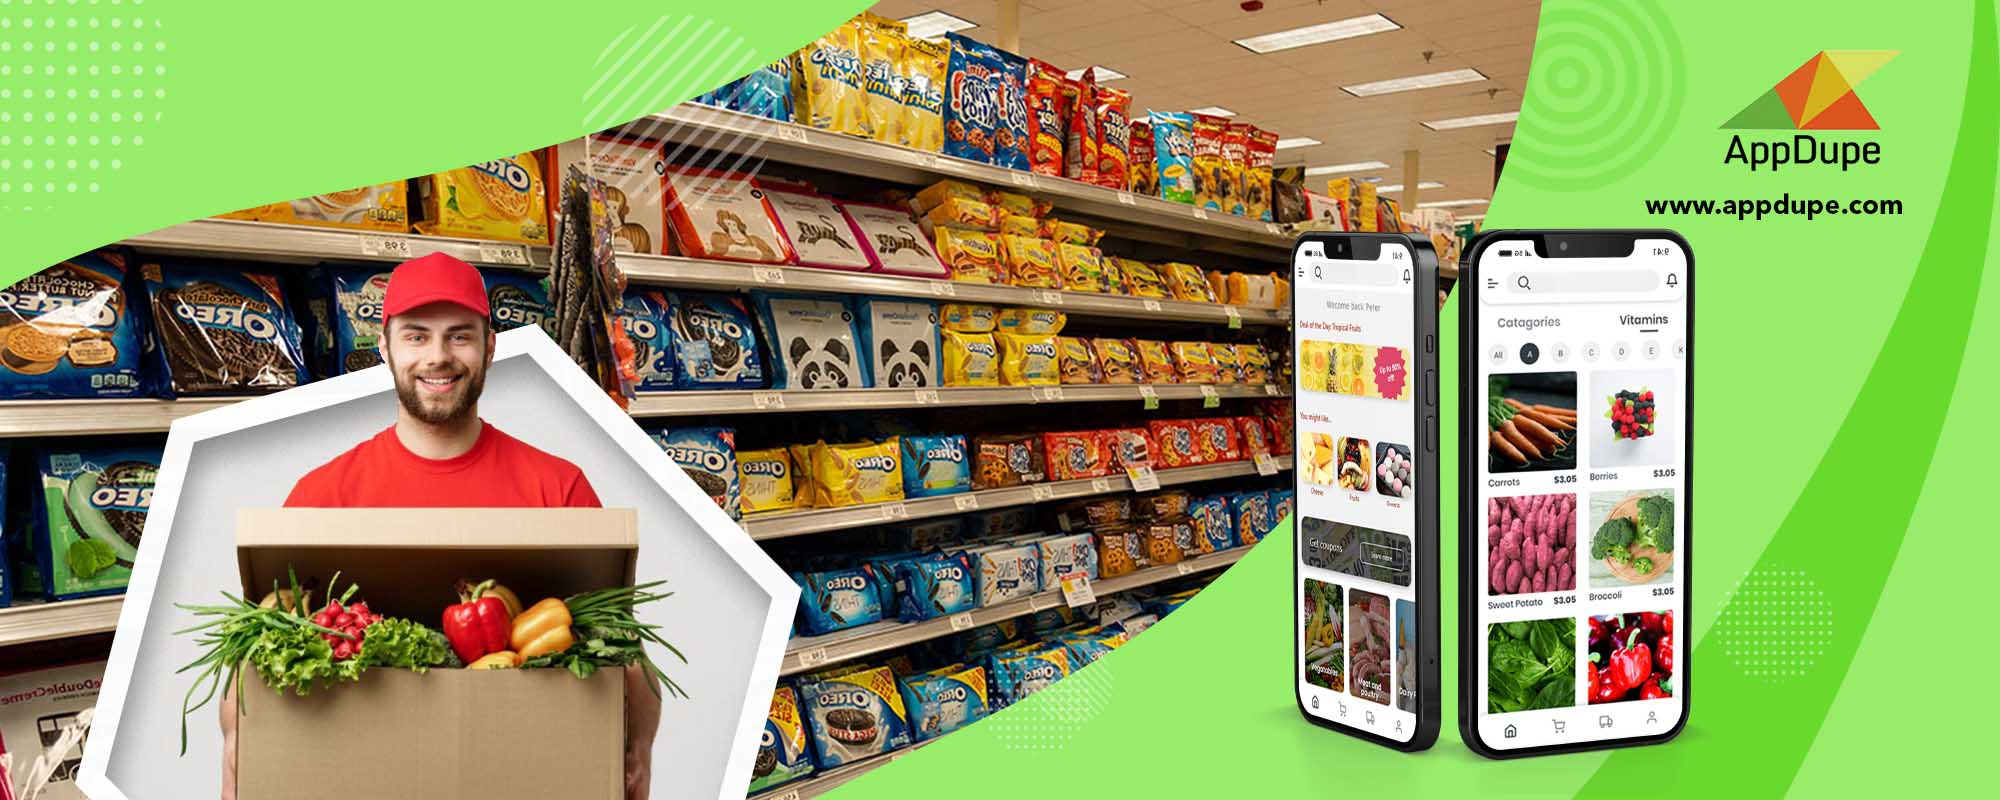 Launch A Food Rocket Clone To Capture The American Grocery Market